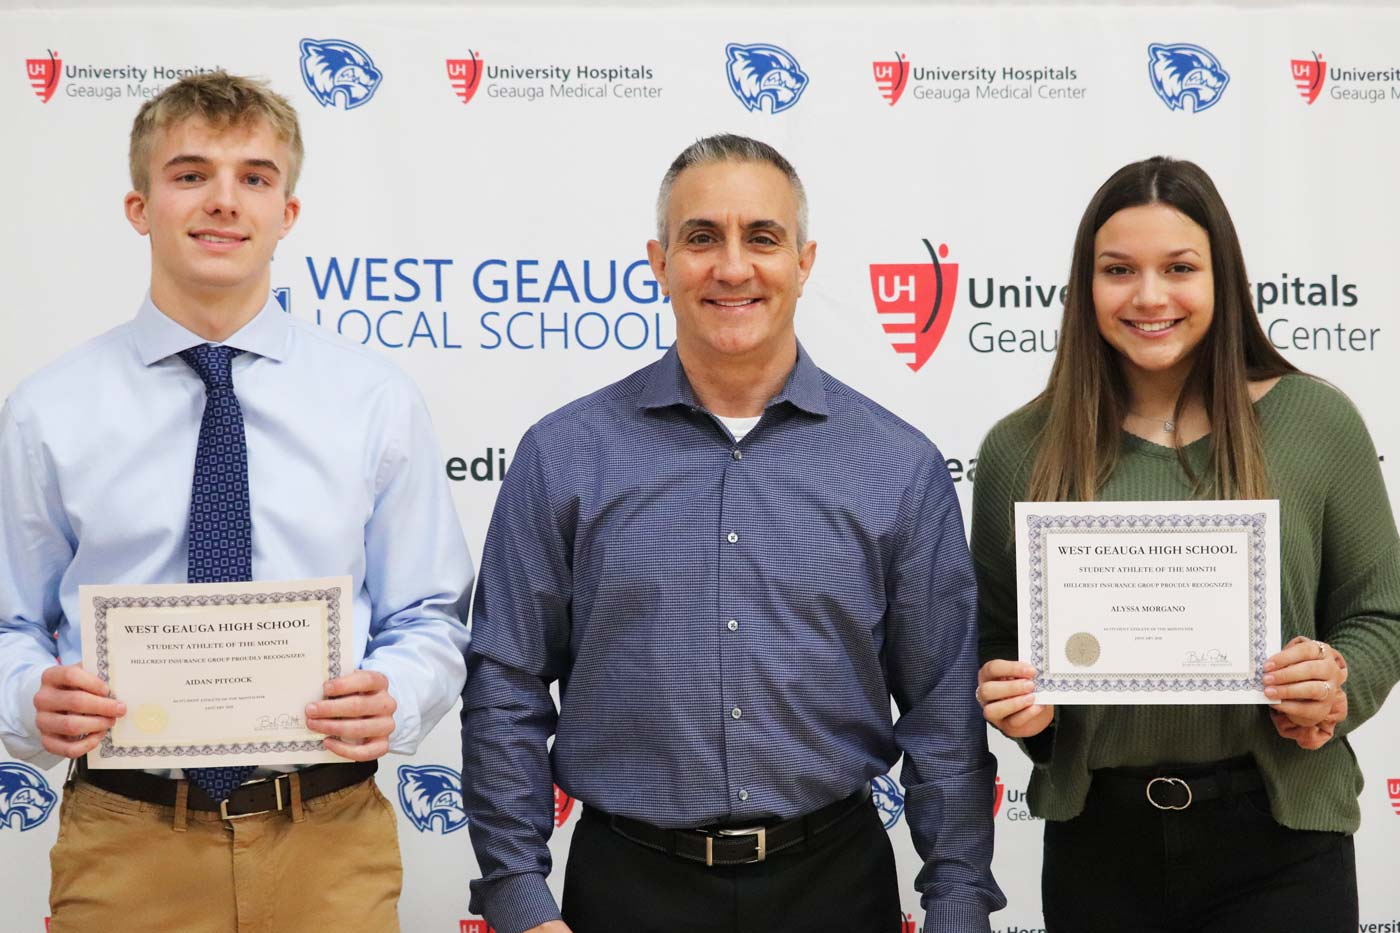 West Geauga January 2020 Student Athlete of the Month by Hillcrest Insurance - Aidan Pitcock & Alyssa Morgano